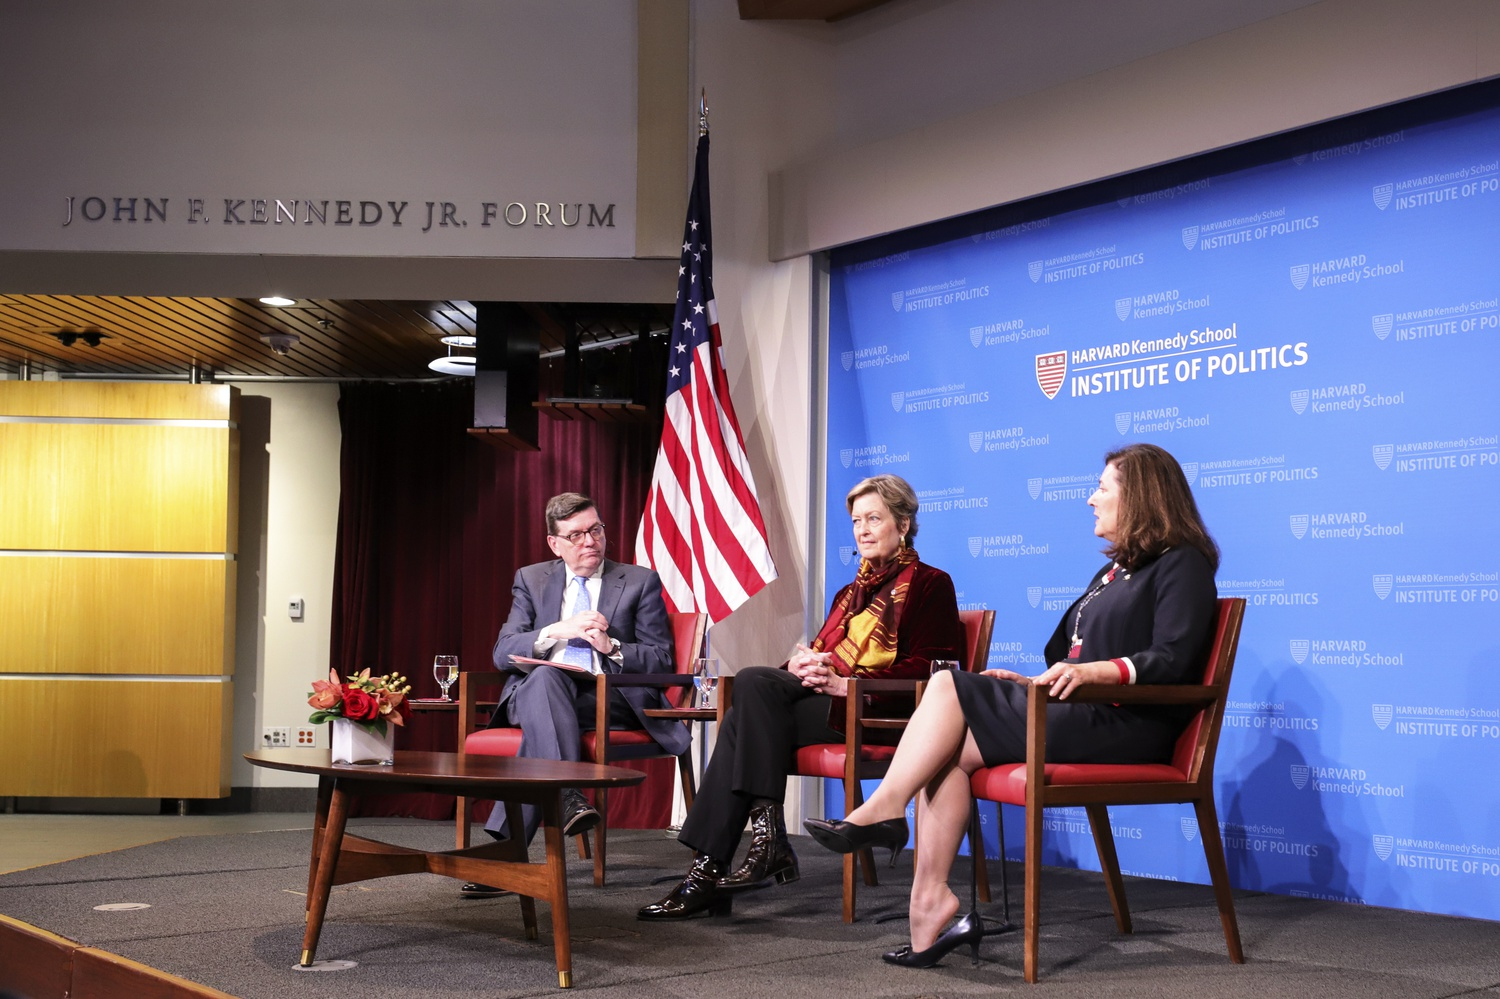 Mark D. Gearan (left), Jody Olsen (center), and Barbara Stewart (right) discuss the importance of young people having the opportunity to pursue public service at the Institute of Politics.